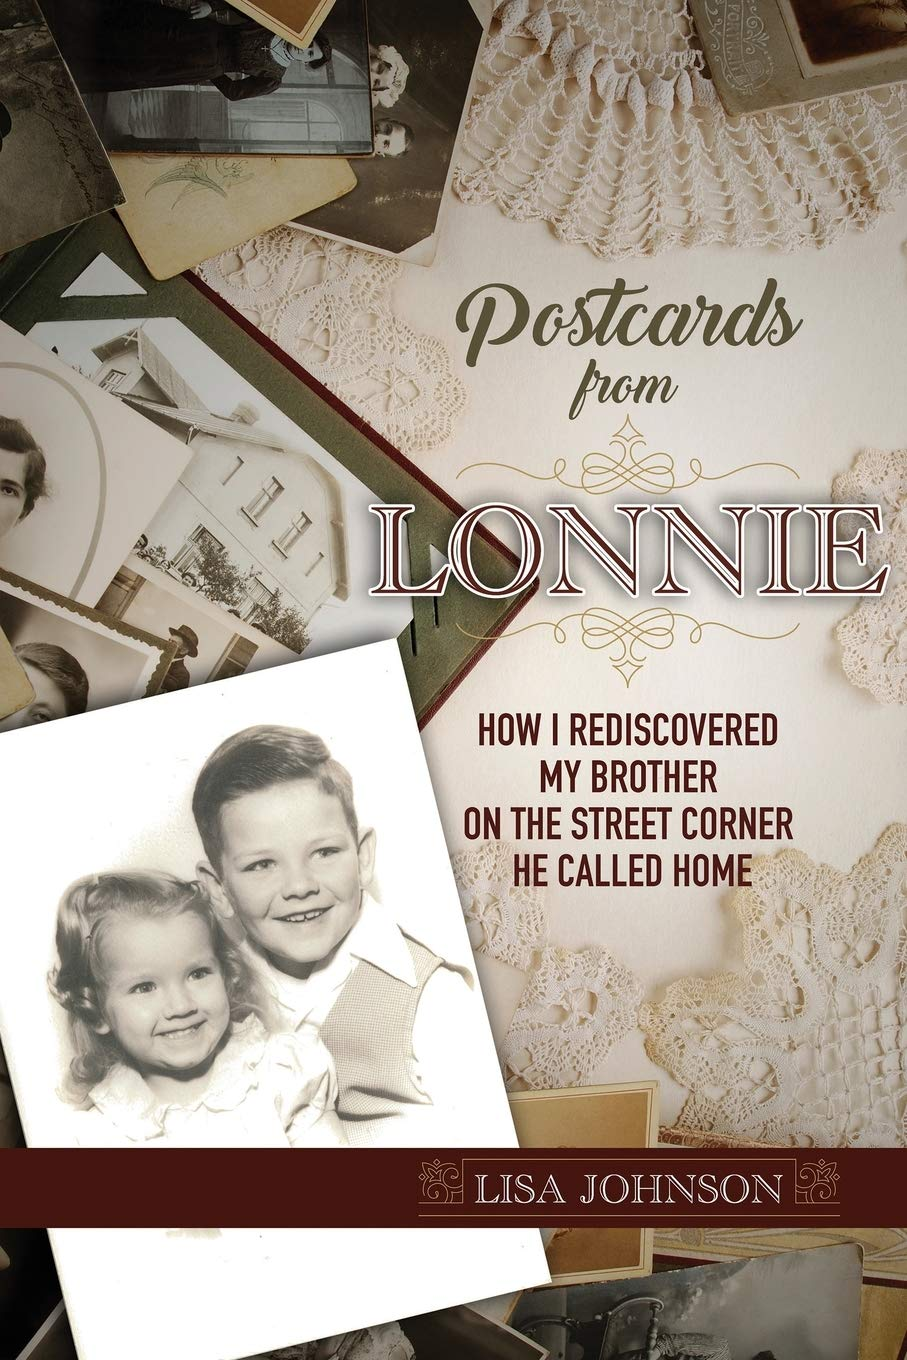 Postcards from Lonnie book cover